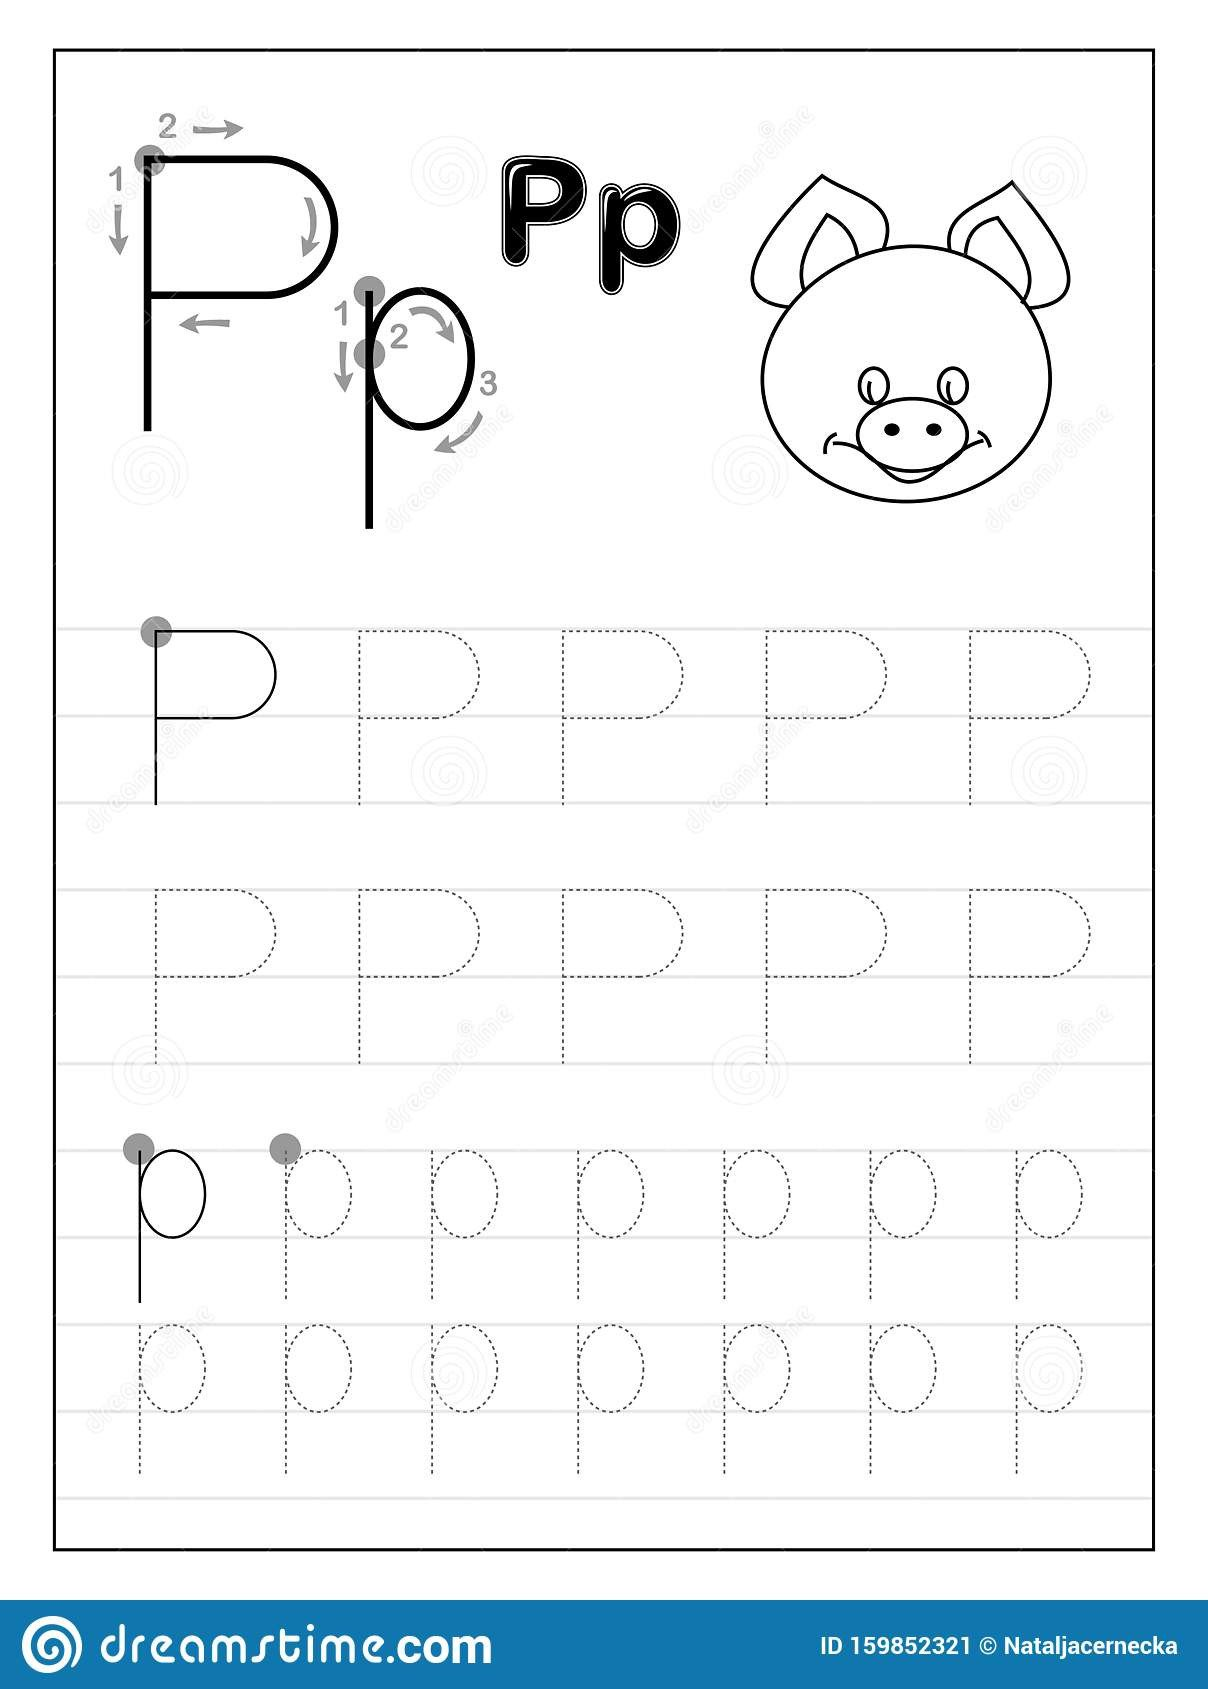 tracing alphabet letter p black white educational pages line kids printable worksheet children textbook developing